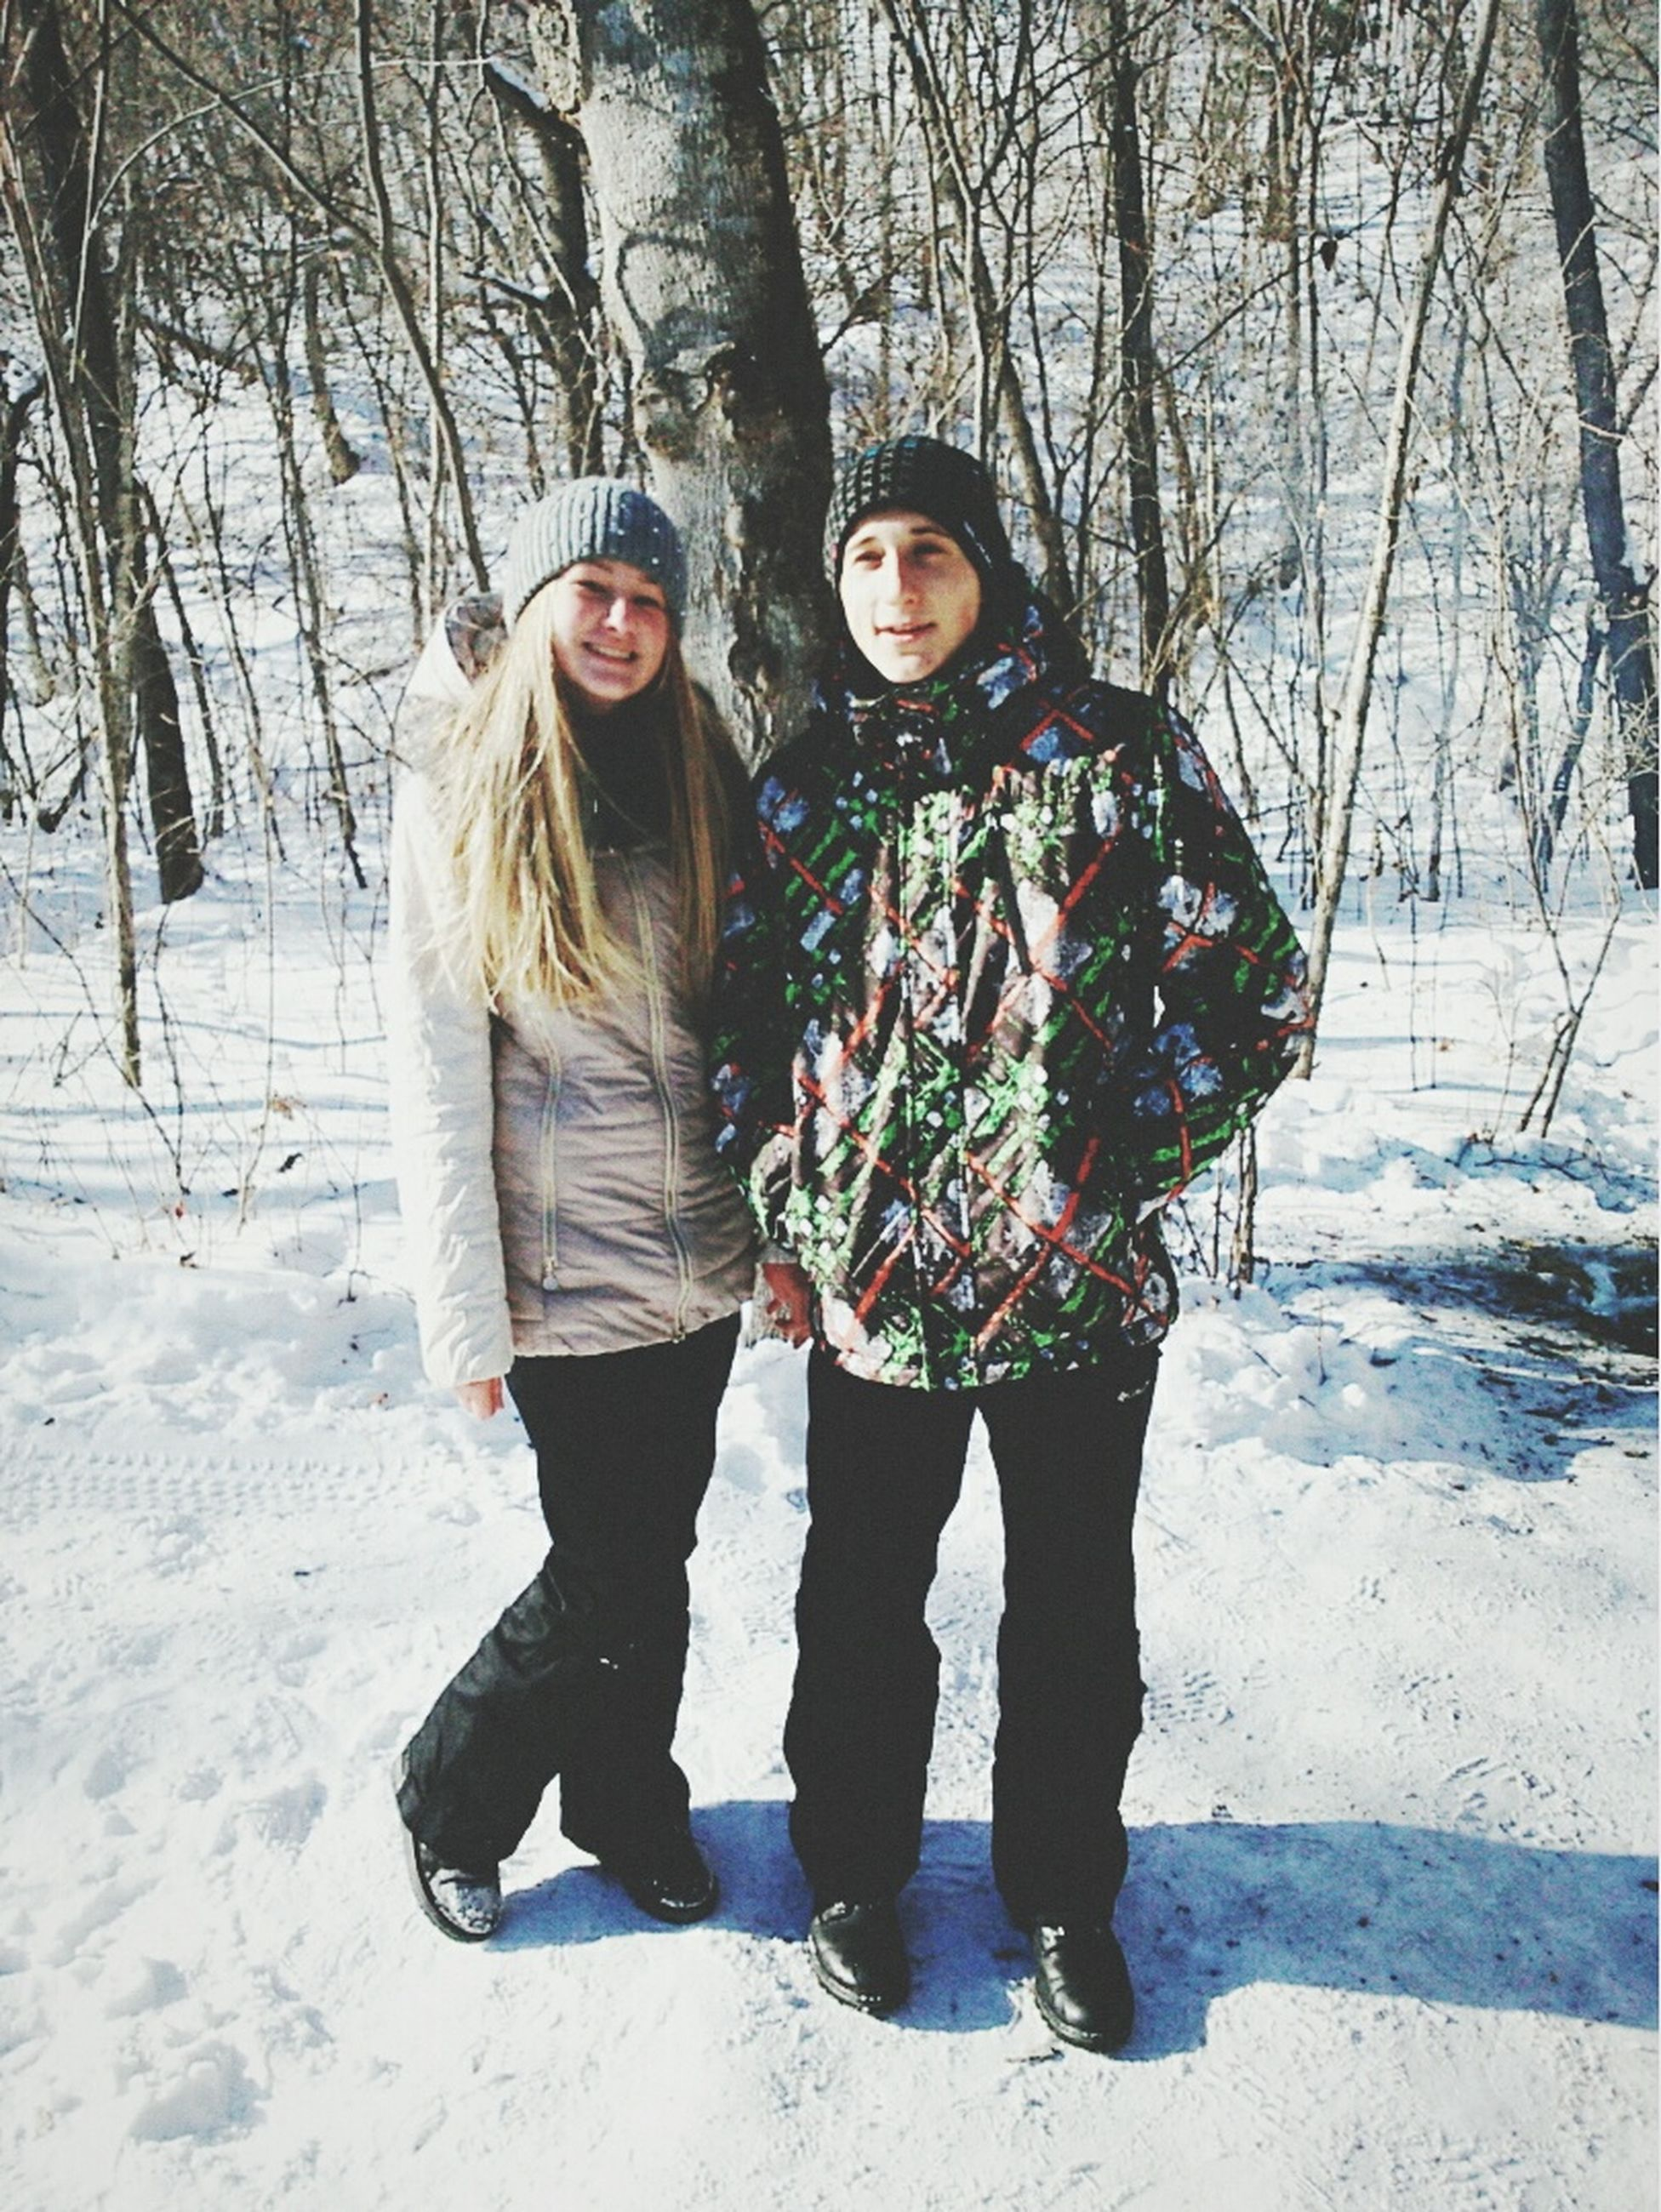 winter, lifestyles, leisure activity, snow, cold temperature, person, full length, season, looking at camera, casual clothing, front view, portrait, warm clothing, standing, young women, young adult, tree, smiling